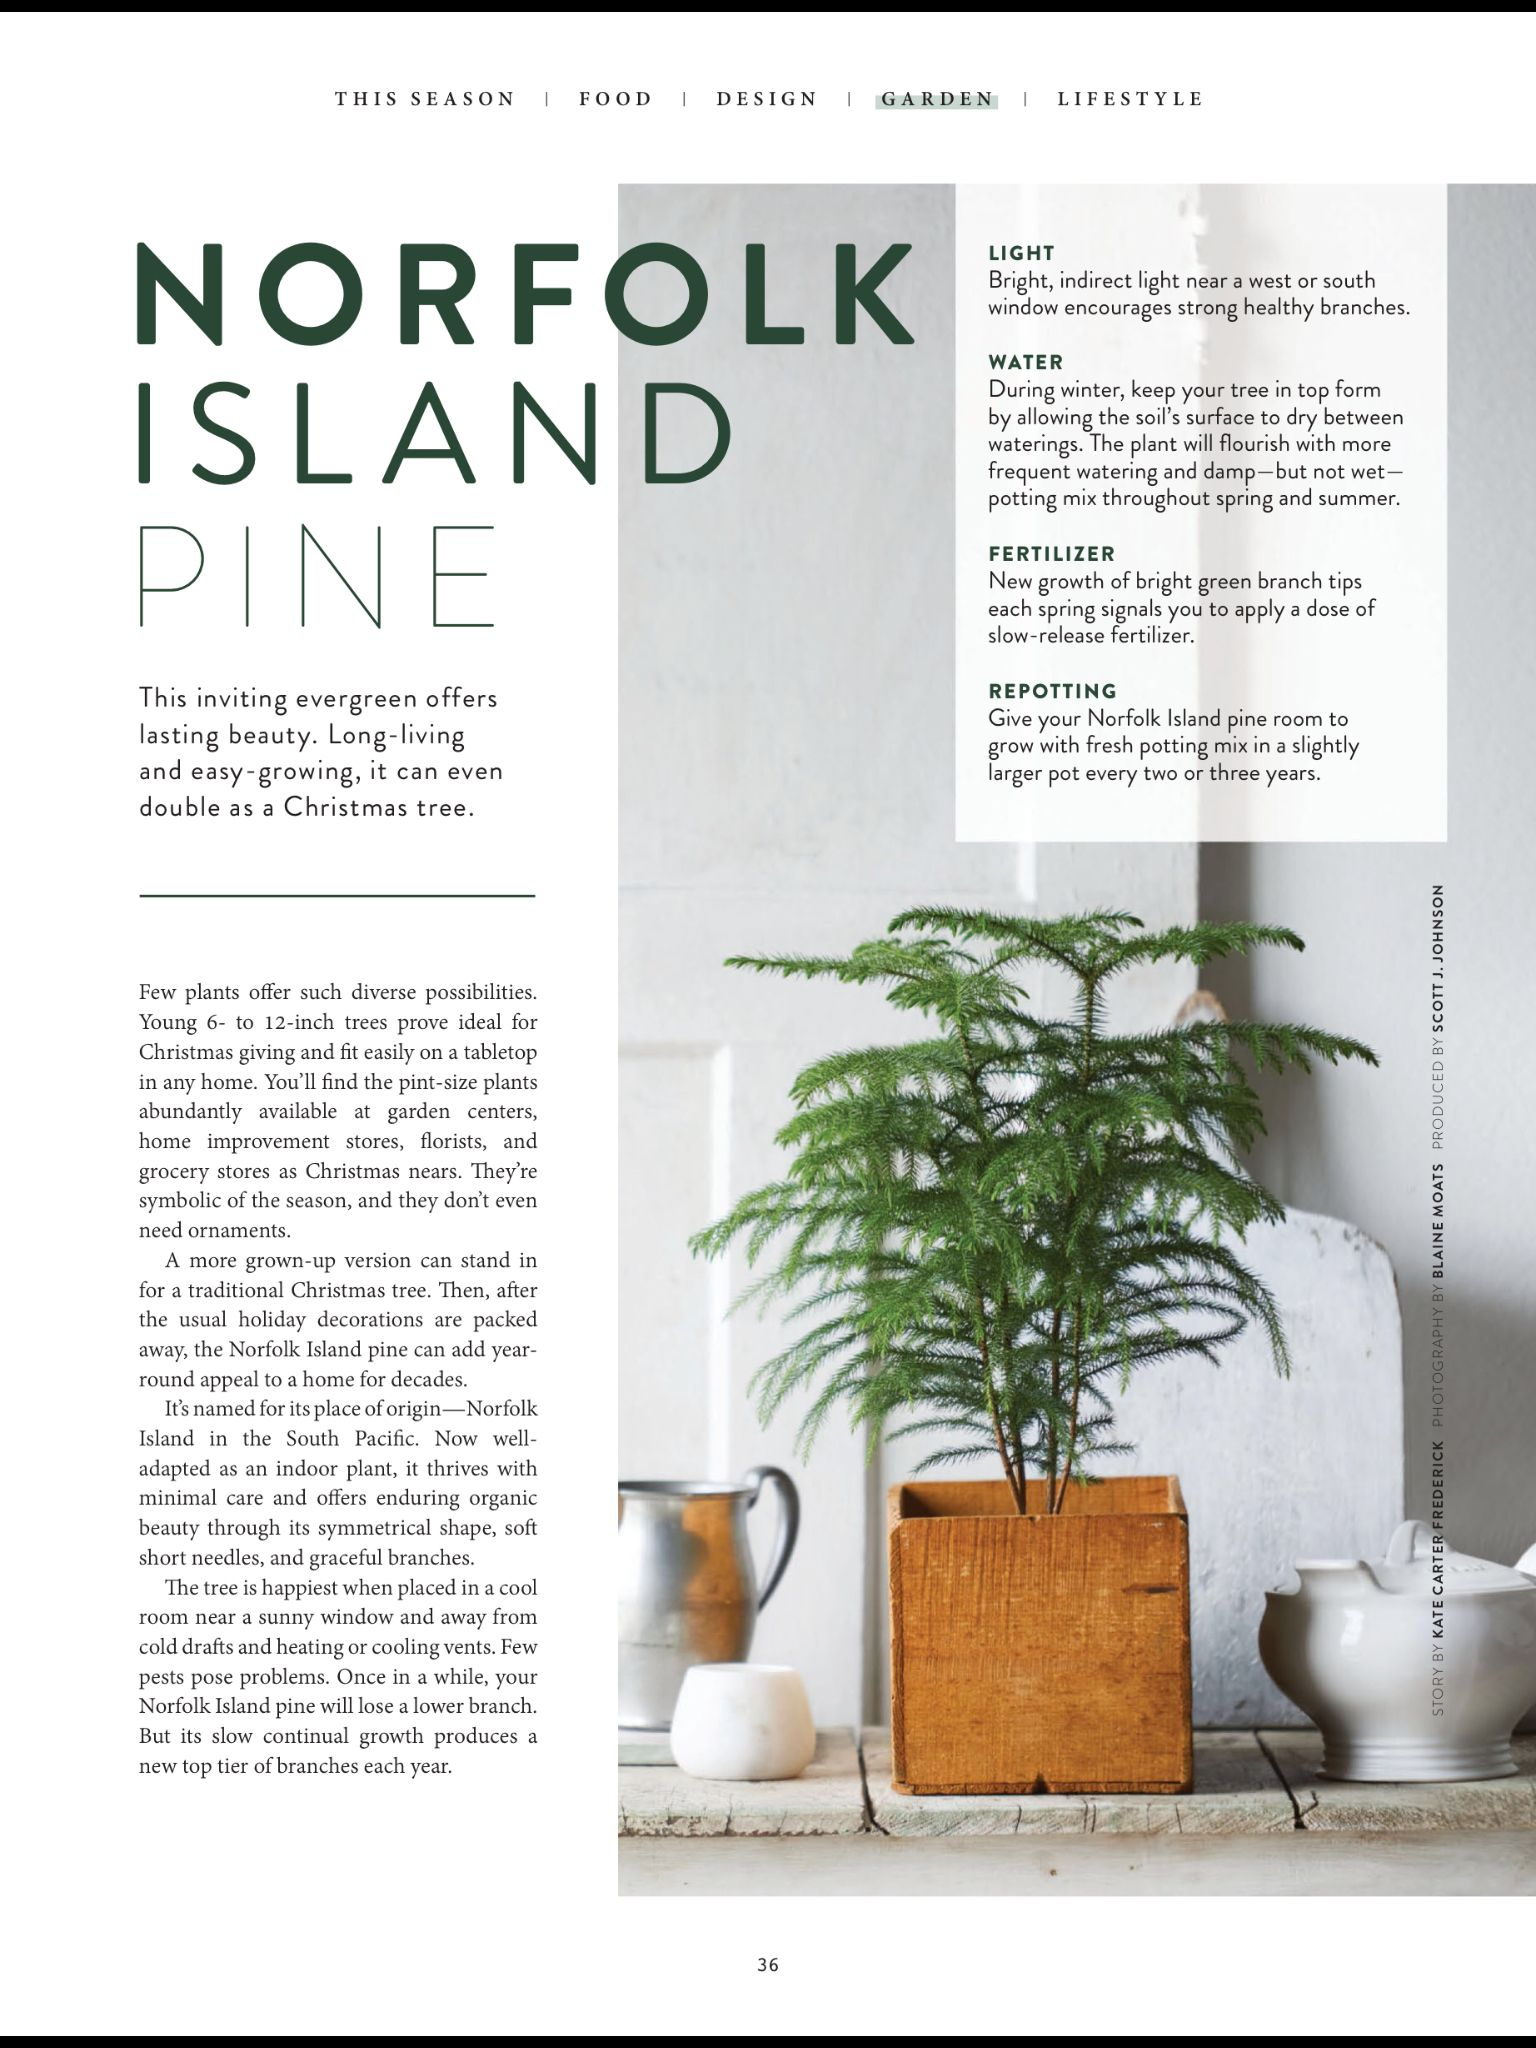 norfolk island pine from the magnolia journal winter 2018 read it